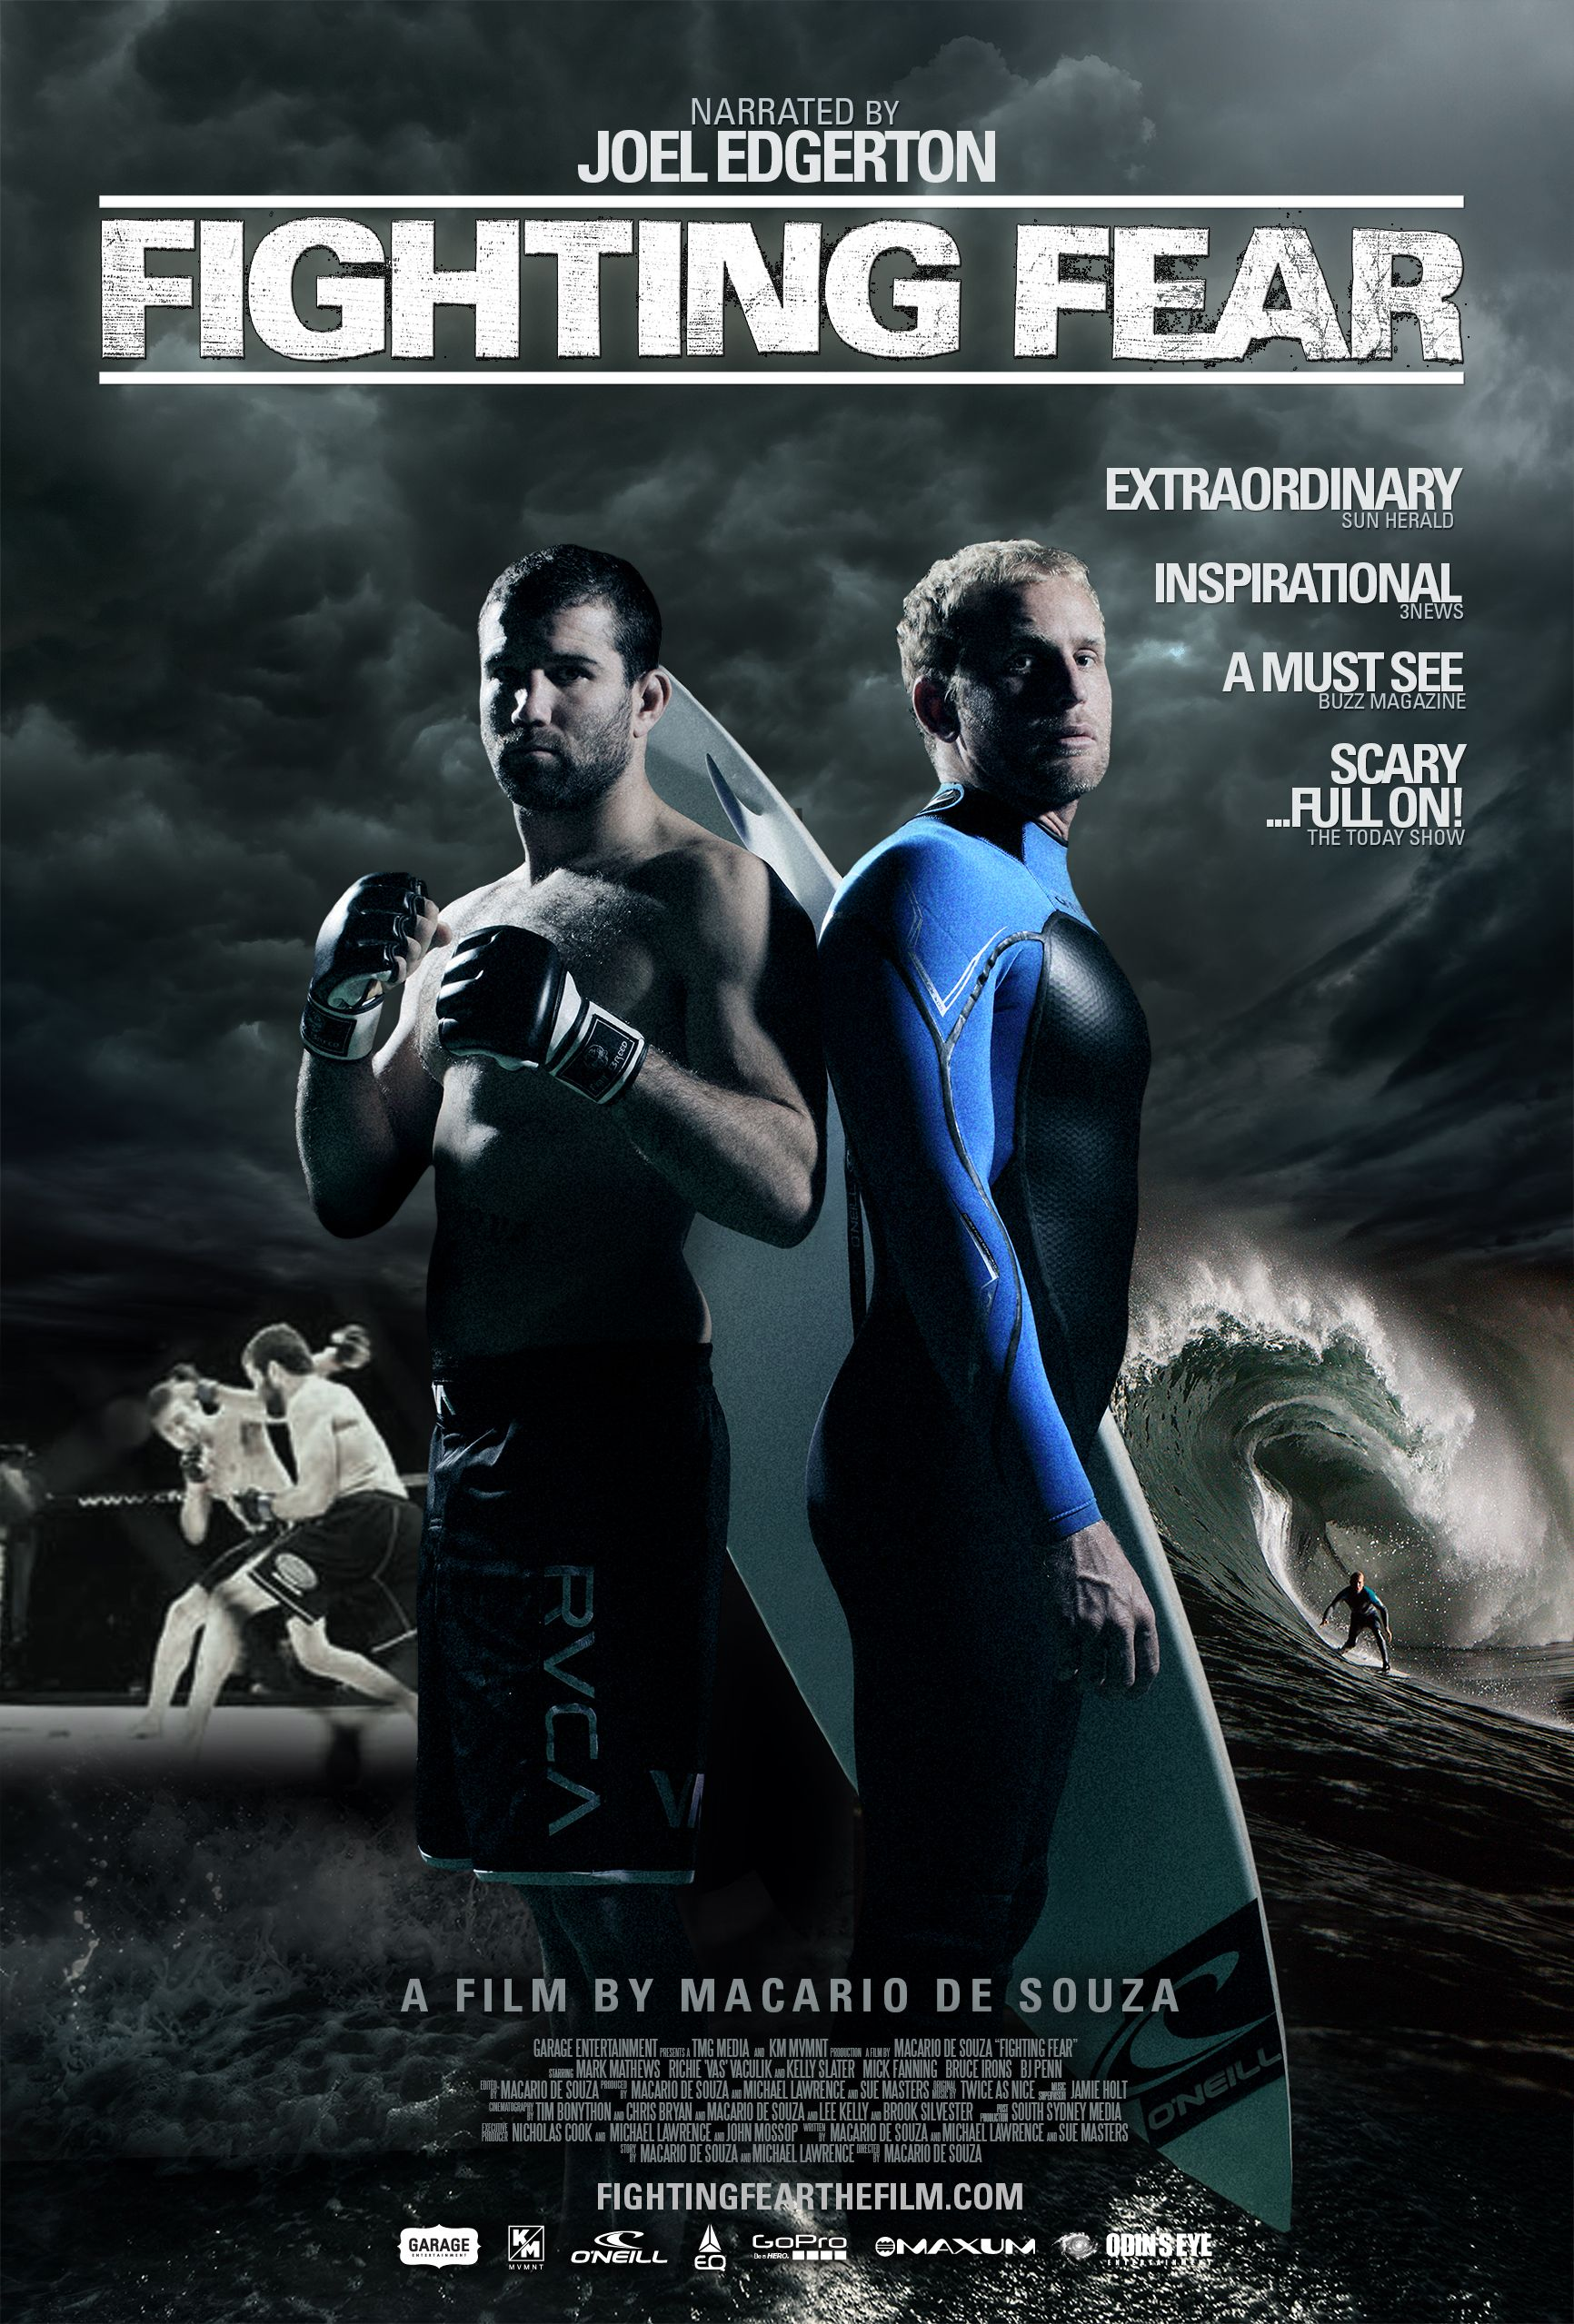 Fighter Fear Movie Poster Documentary MMA surfing